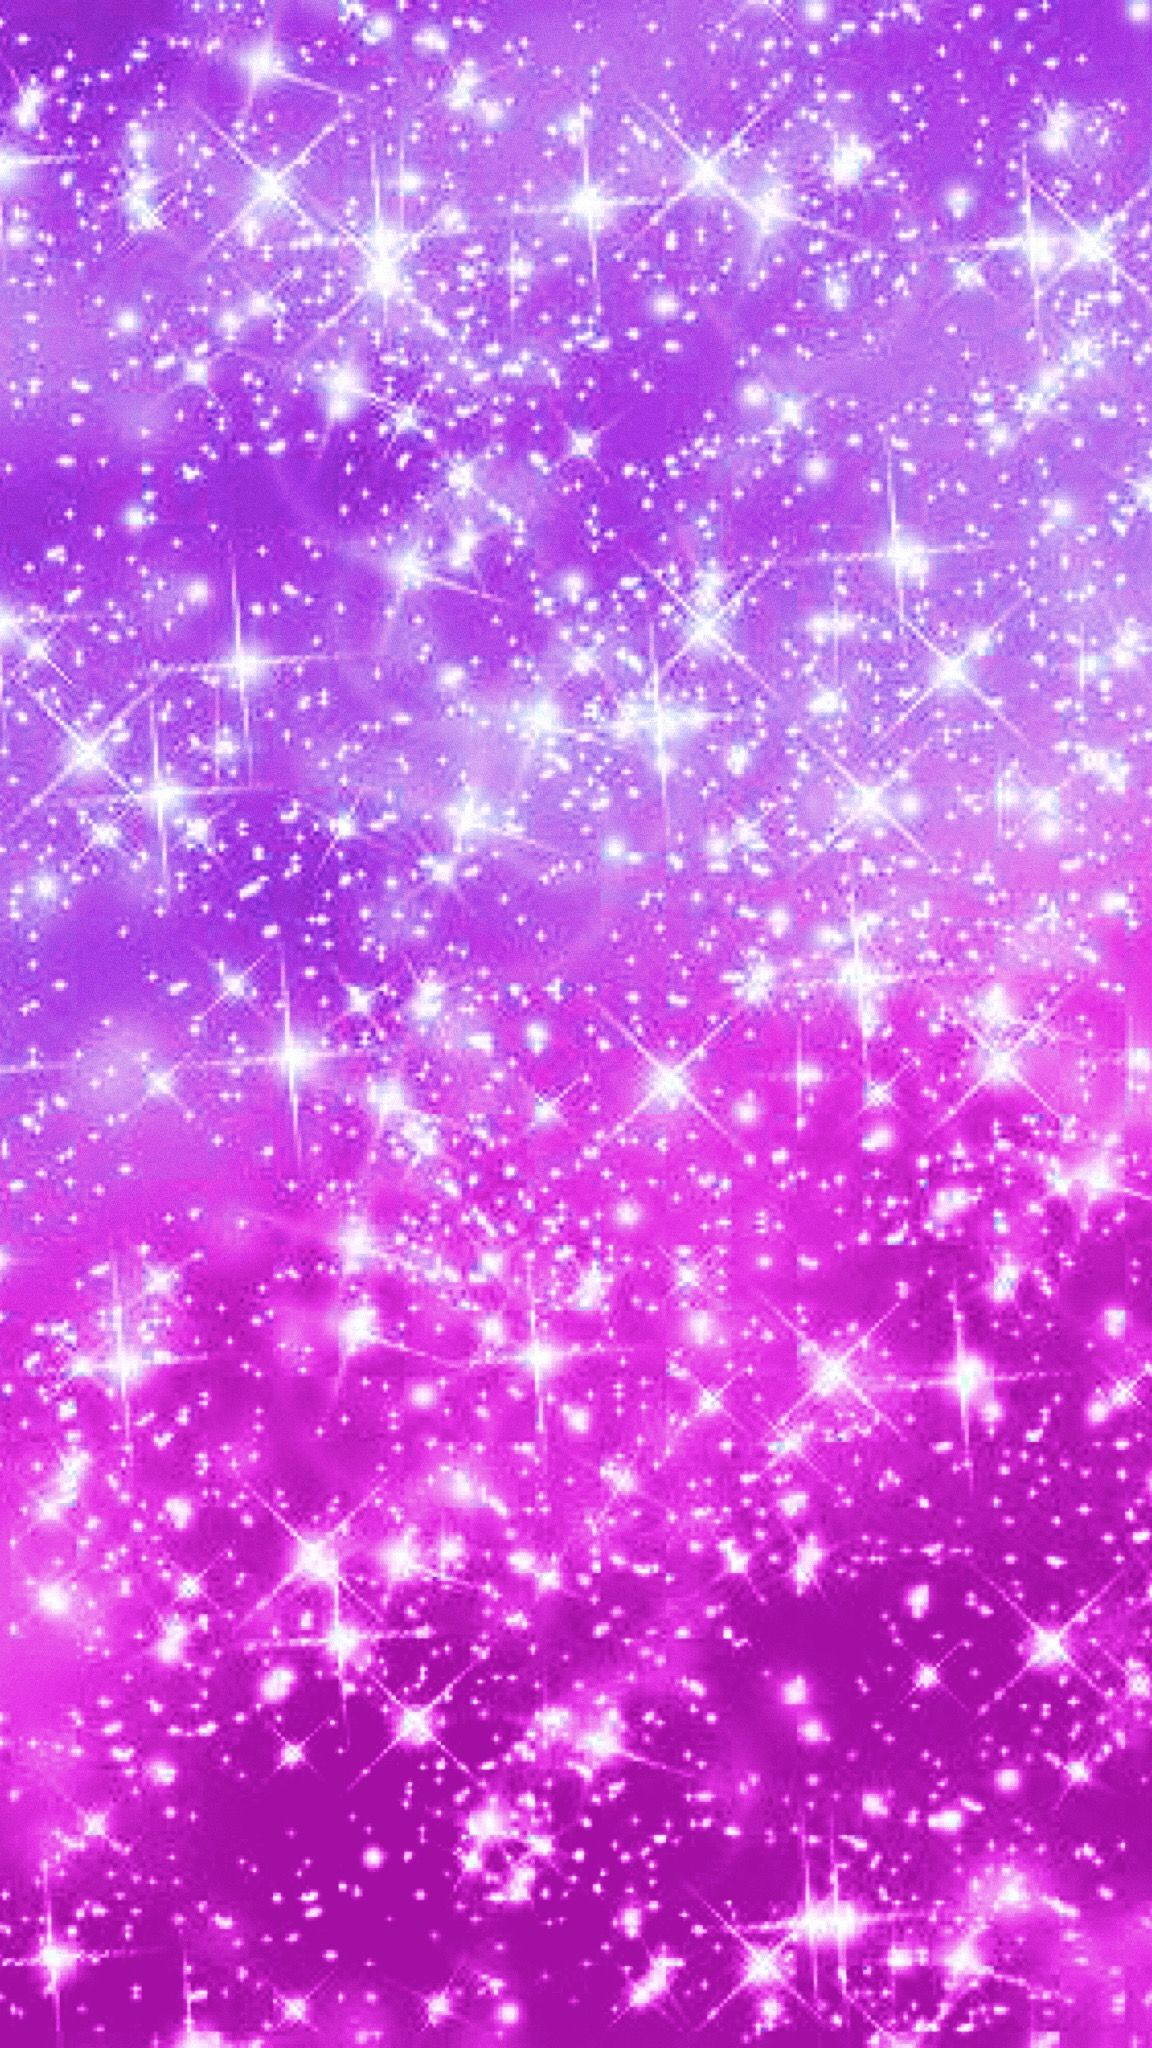 Glitter phone wallpaper my glitter phone wallpaper - Purple glitter wallpaper hd ...